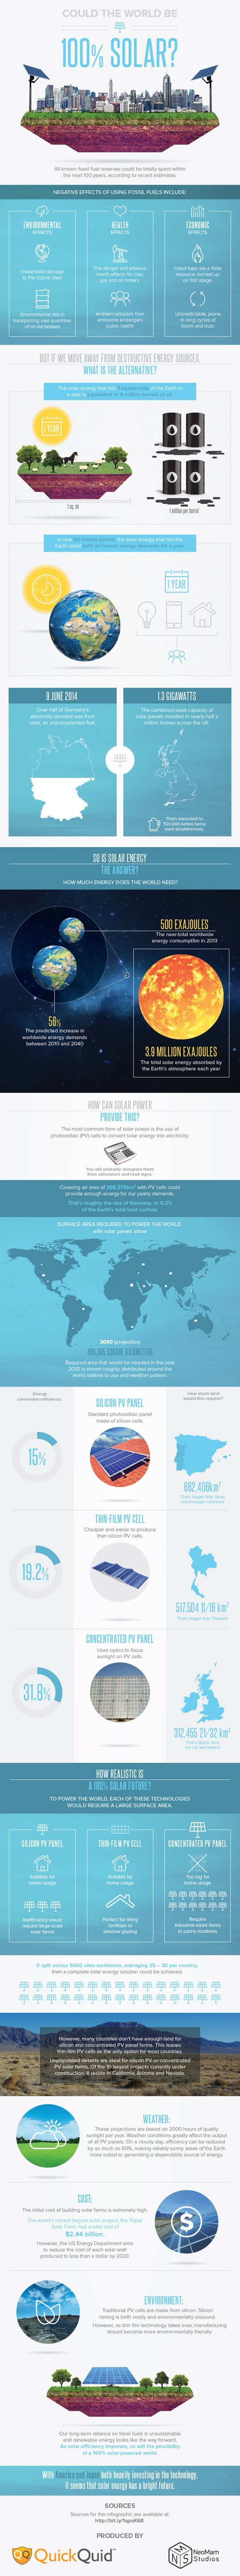 INFOGRAPHIC: Could the Entire World Really Run on Solar Power? [Future Energy: http://futuristicnews.com/category/future-energy/ Solar Energy: http://futuristicshop.com/category/solar_power/]